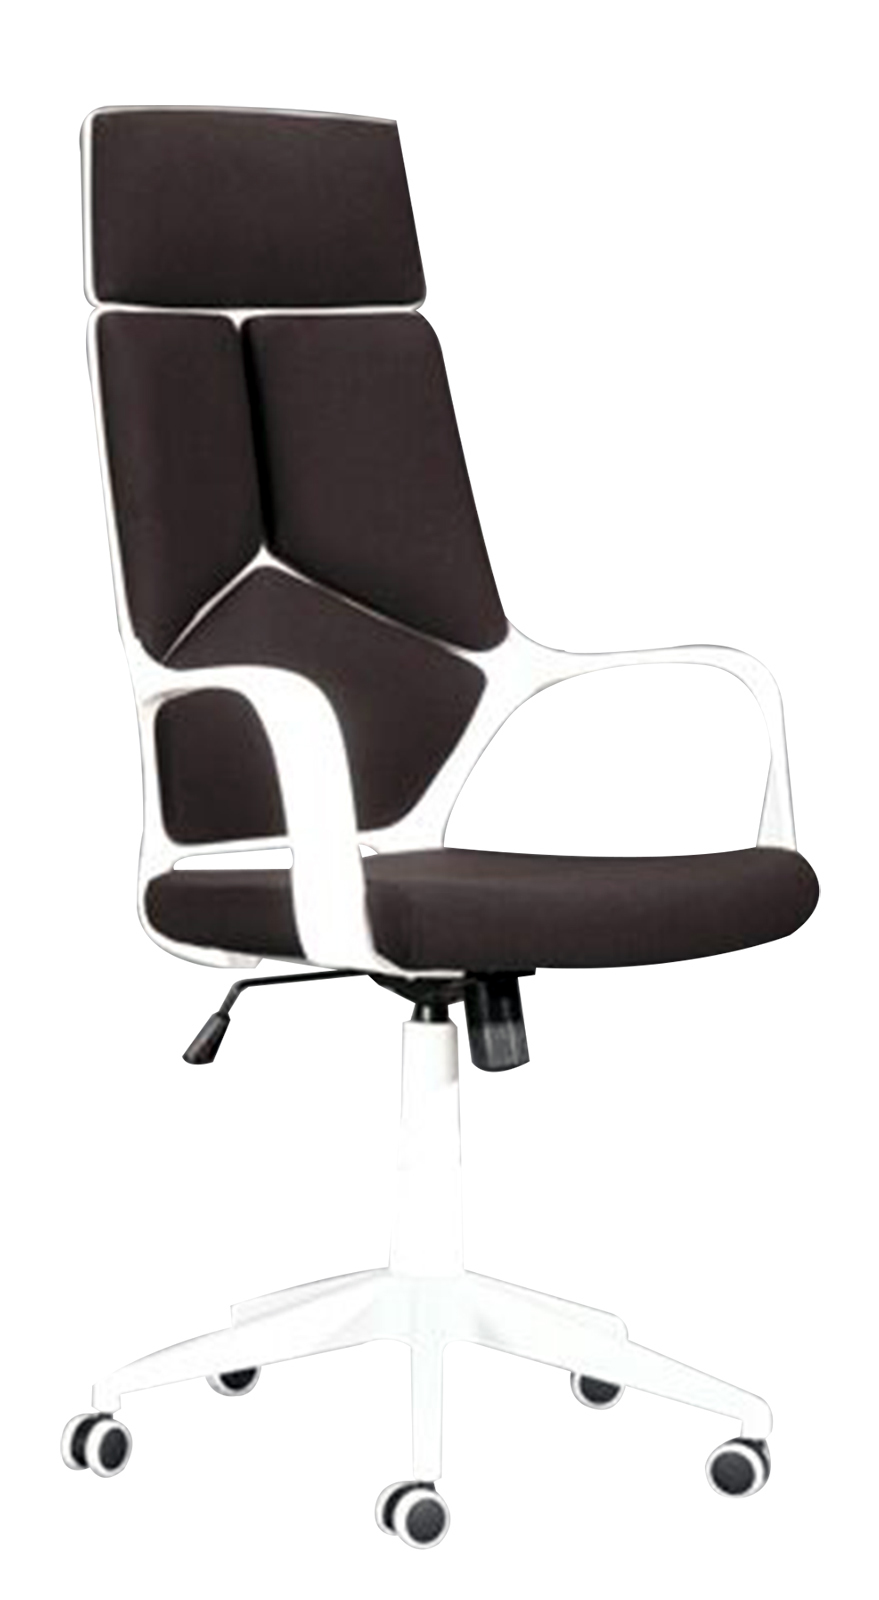 office chair 241.jpg